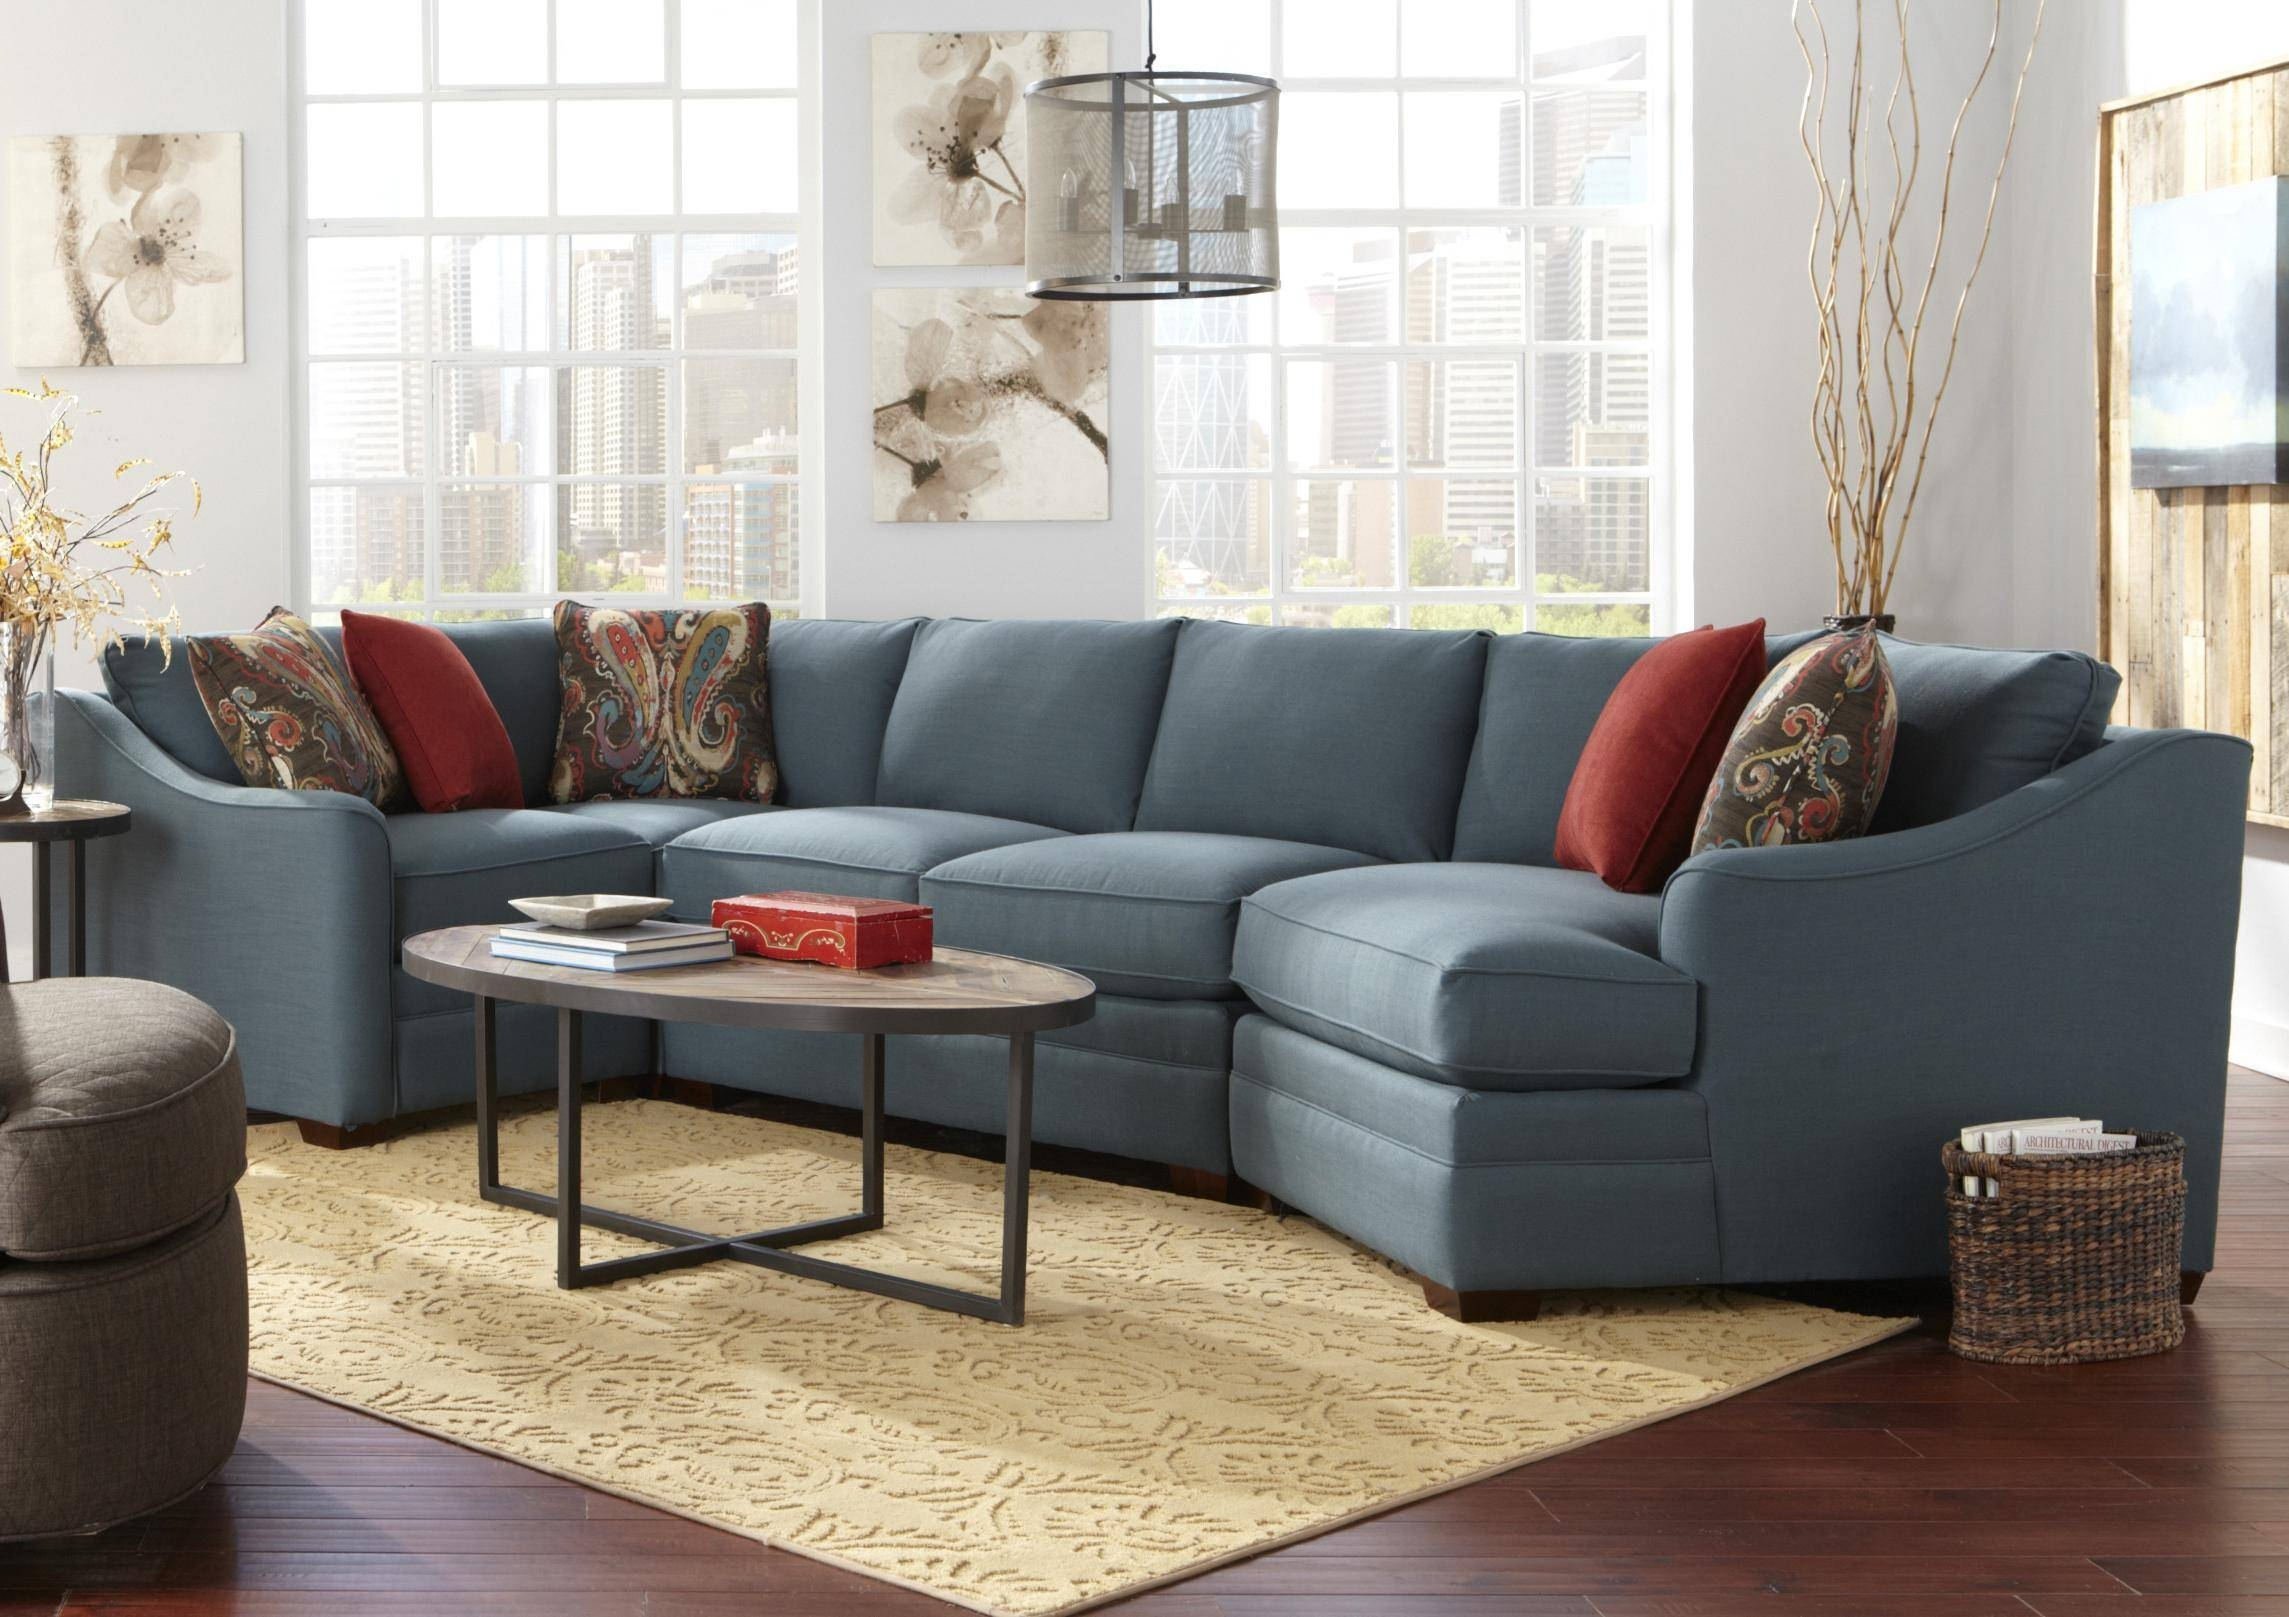 Luxury sectional sofa san diego sectional sofas for Sectional sofa sale san diego